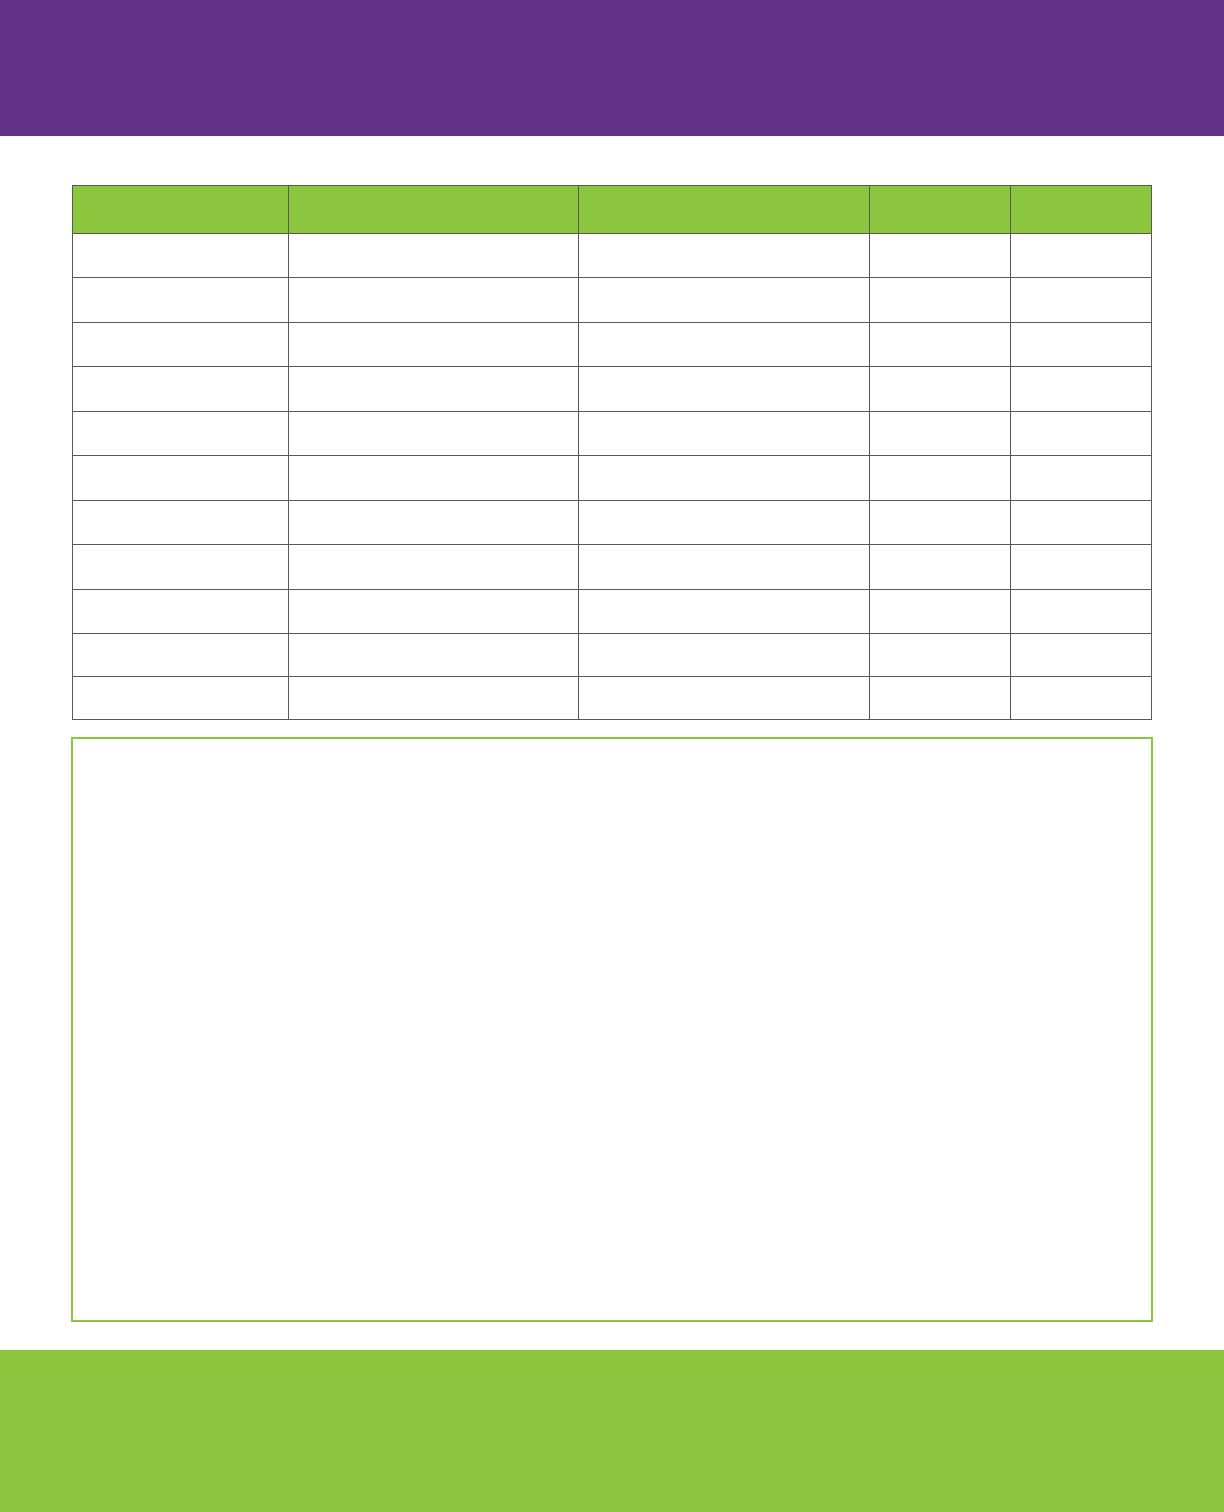 download project implementation timeline template for free